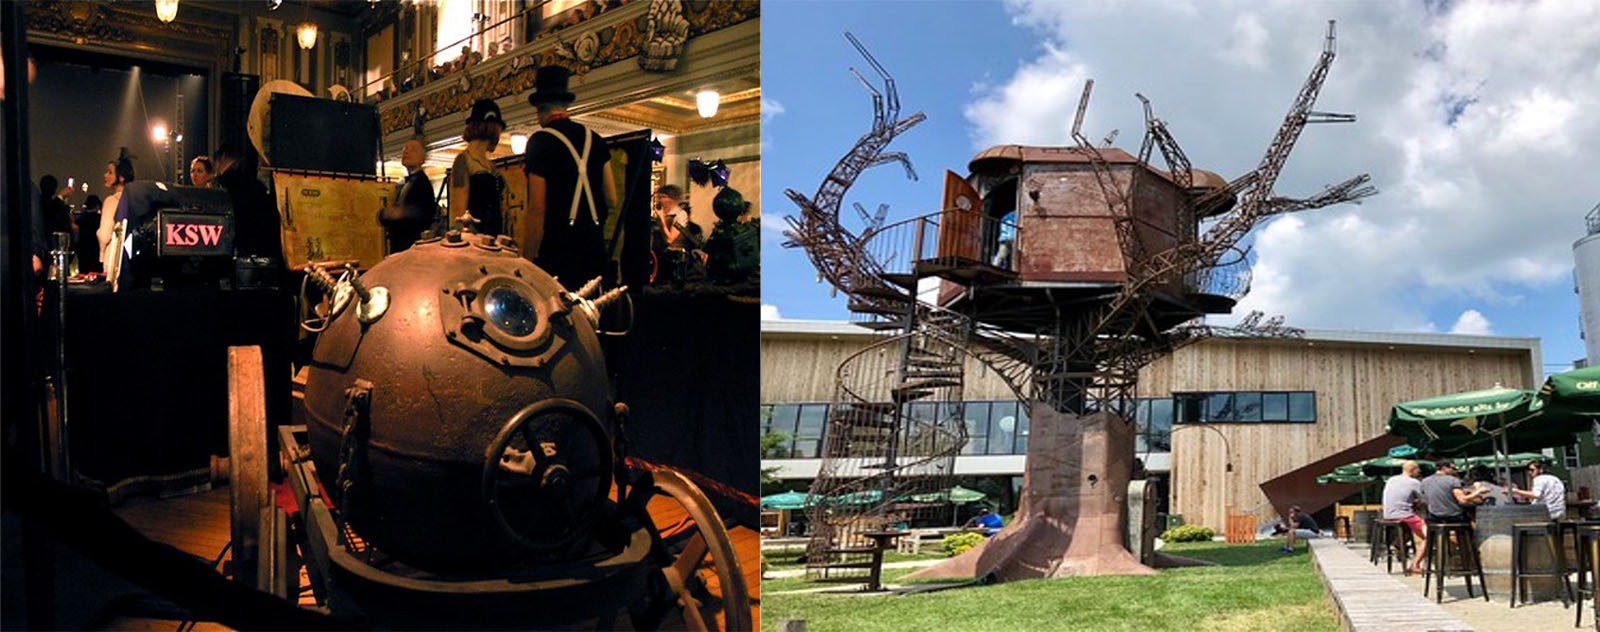 Steampunk tree house - Kinetic steam work